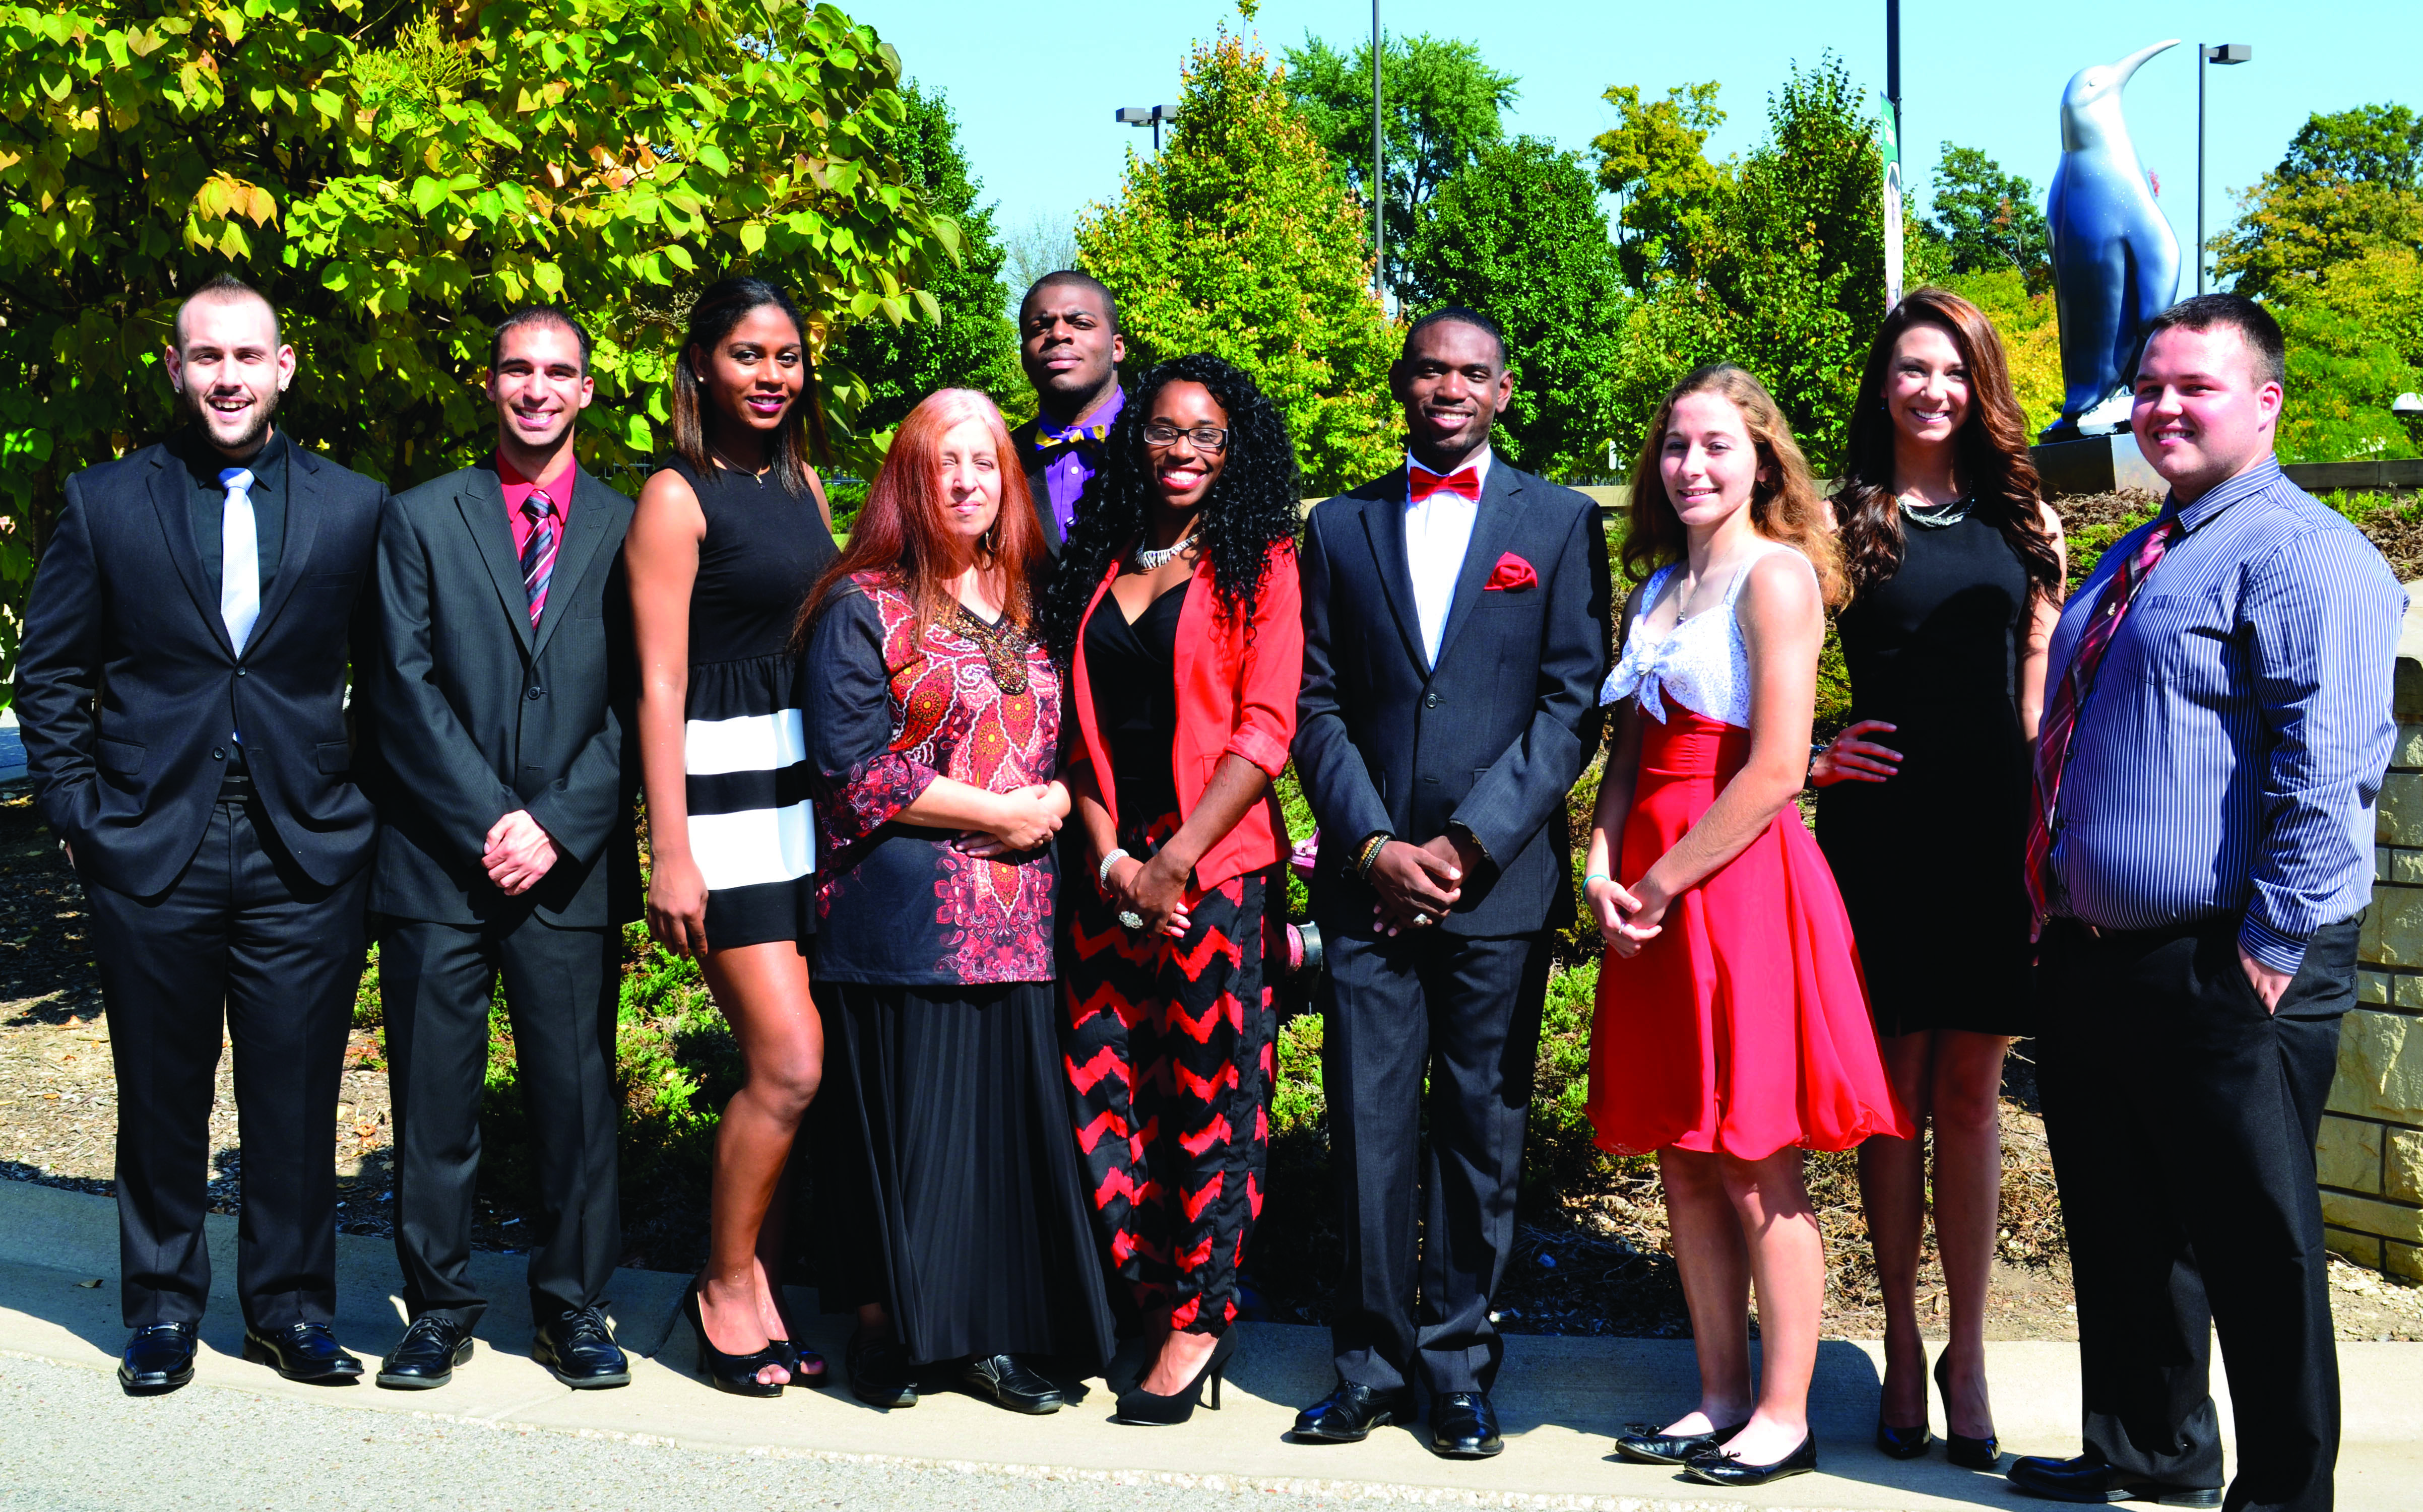 Pictured from left: Gino West, Scott Miller, Sydney Sims, Rebecca Banks, Everet Thompson, Alteeka Vanwright, Julian Jones, Ashley Smith, Paige Taylor, James MacGregor.